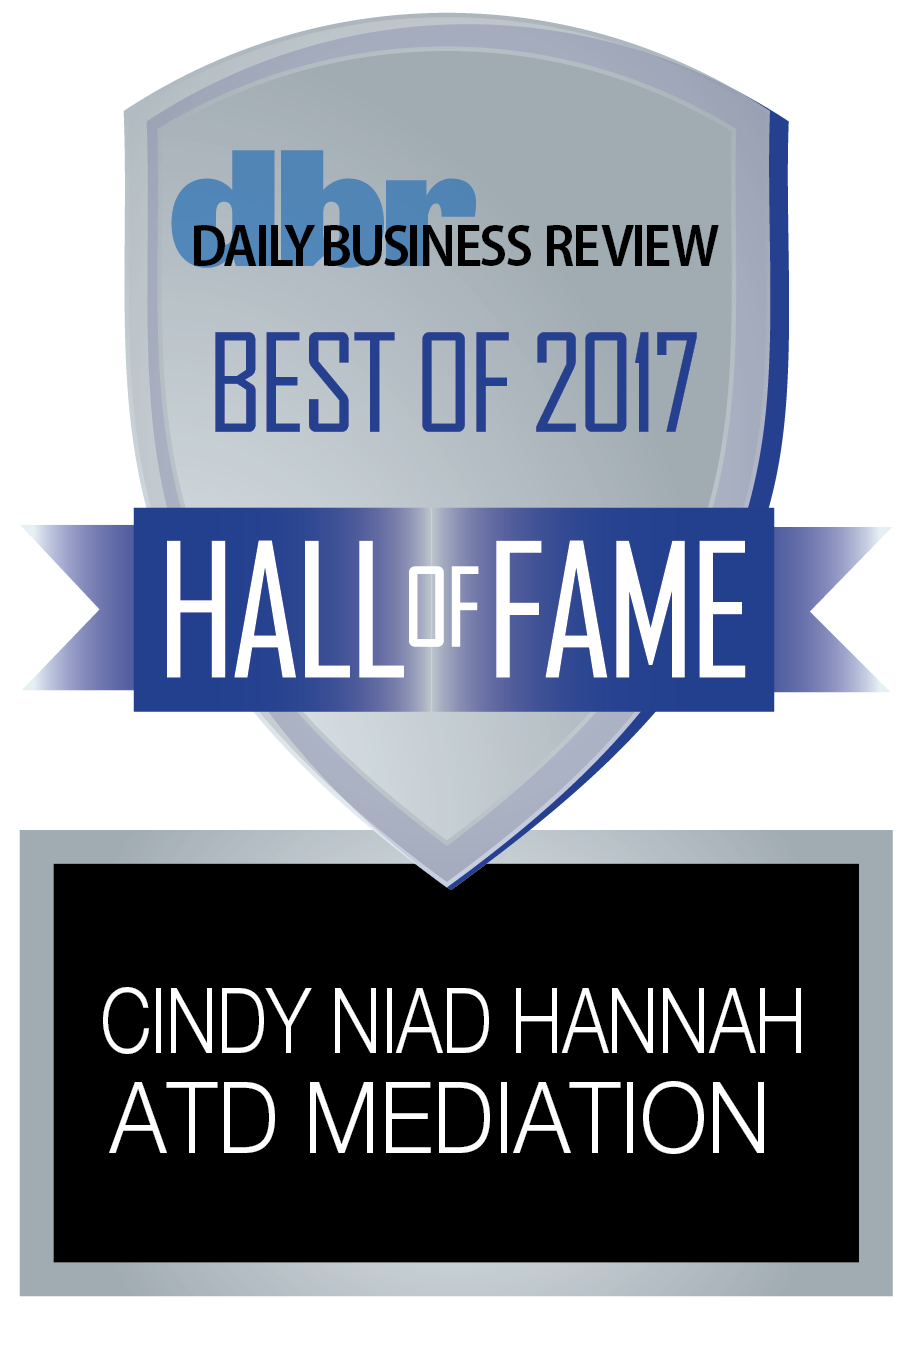 CINDY  HANNAH_ATD-Mediation_HOF 2017